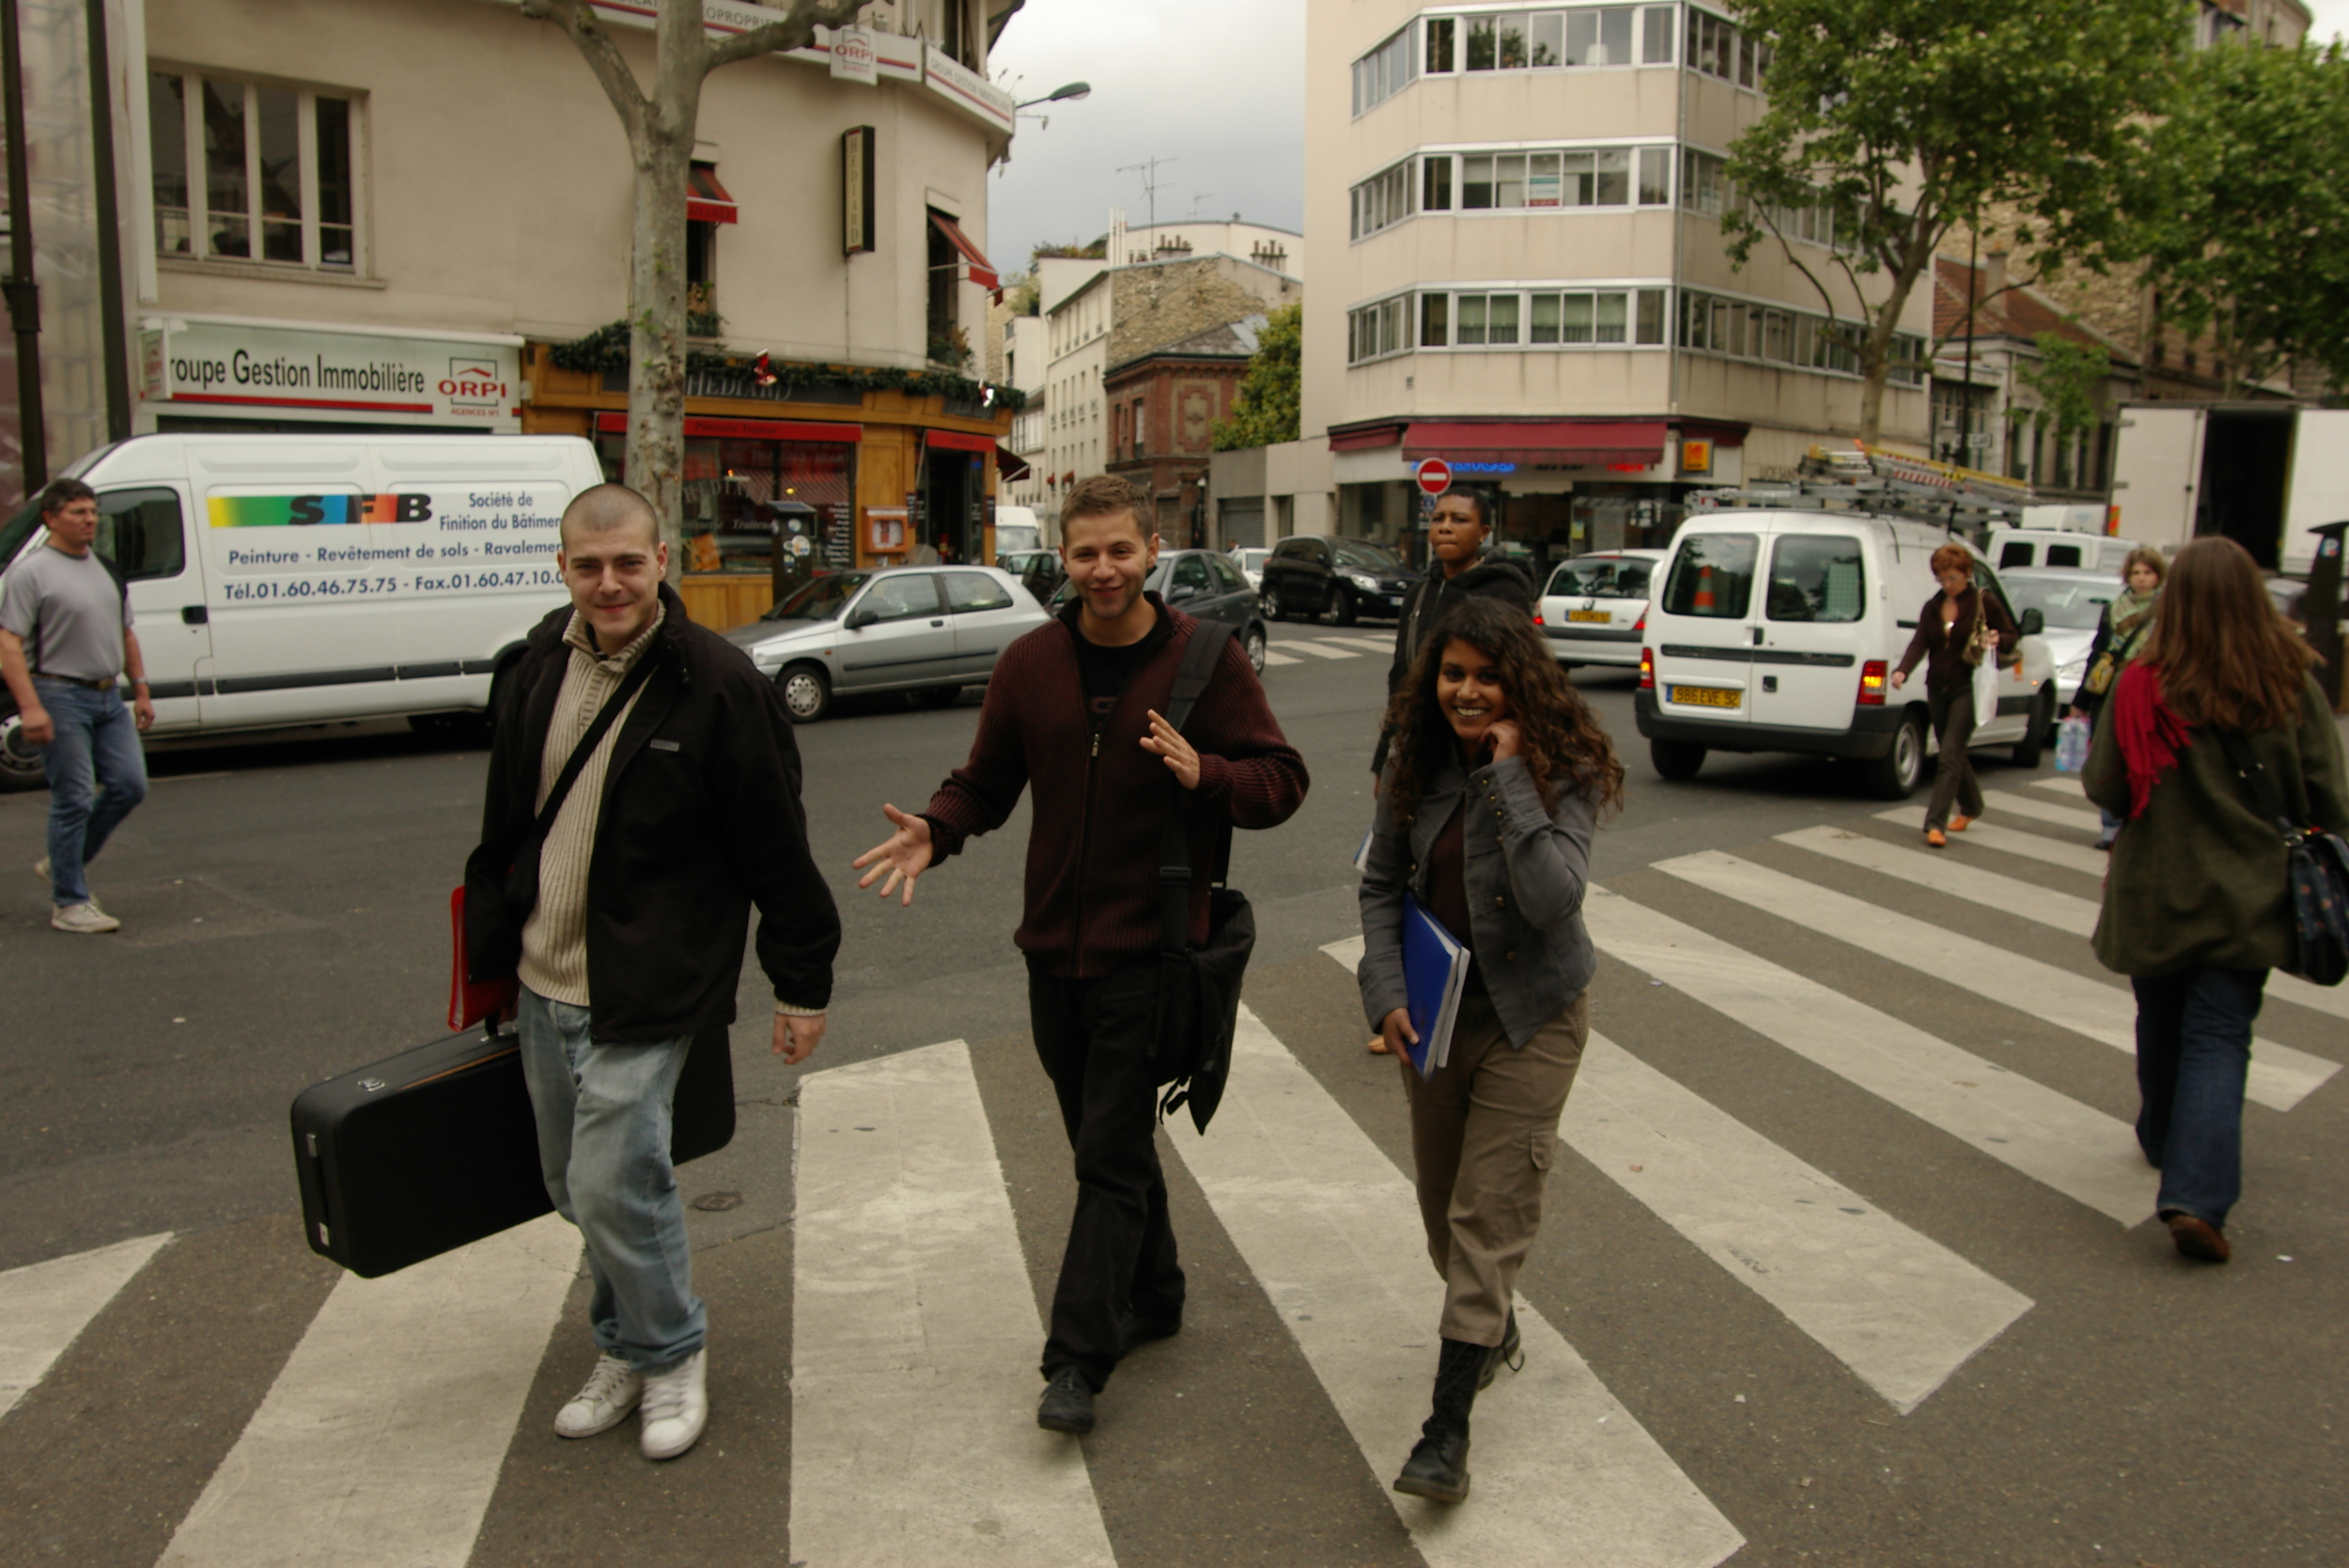 I was so fortunate to study Jazz for 4 years in Paris, amongst incredible musicians and teachers from all over the world. This was taken in Paris, 2006